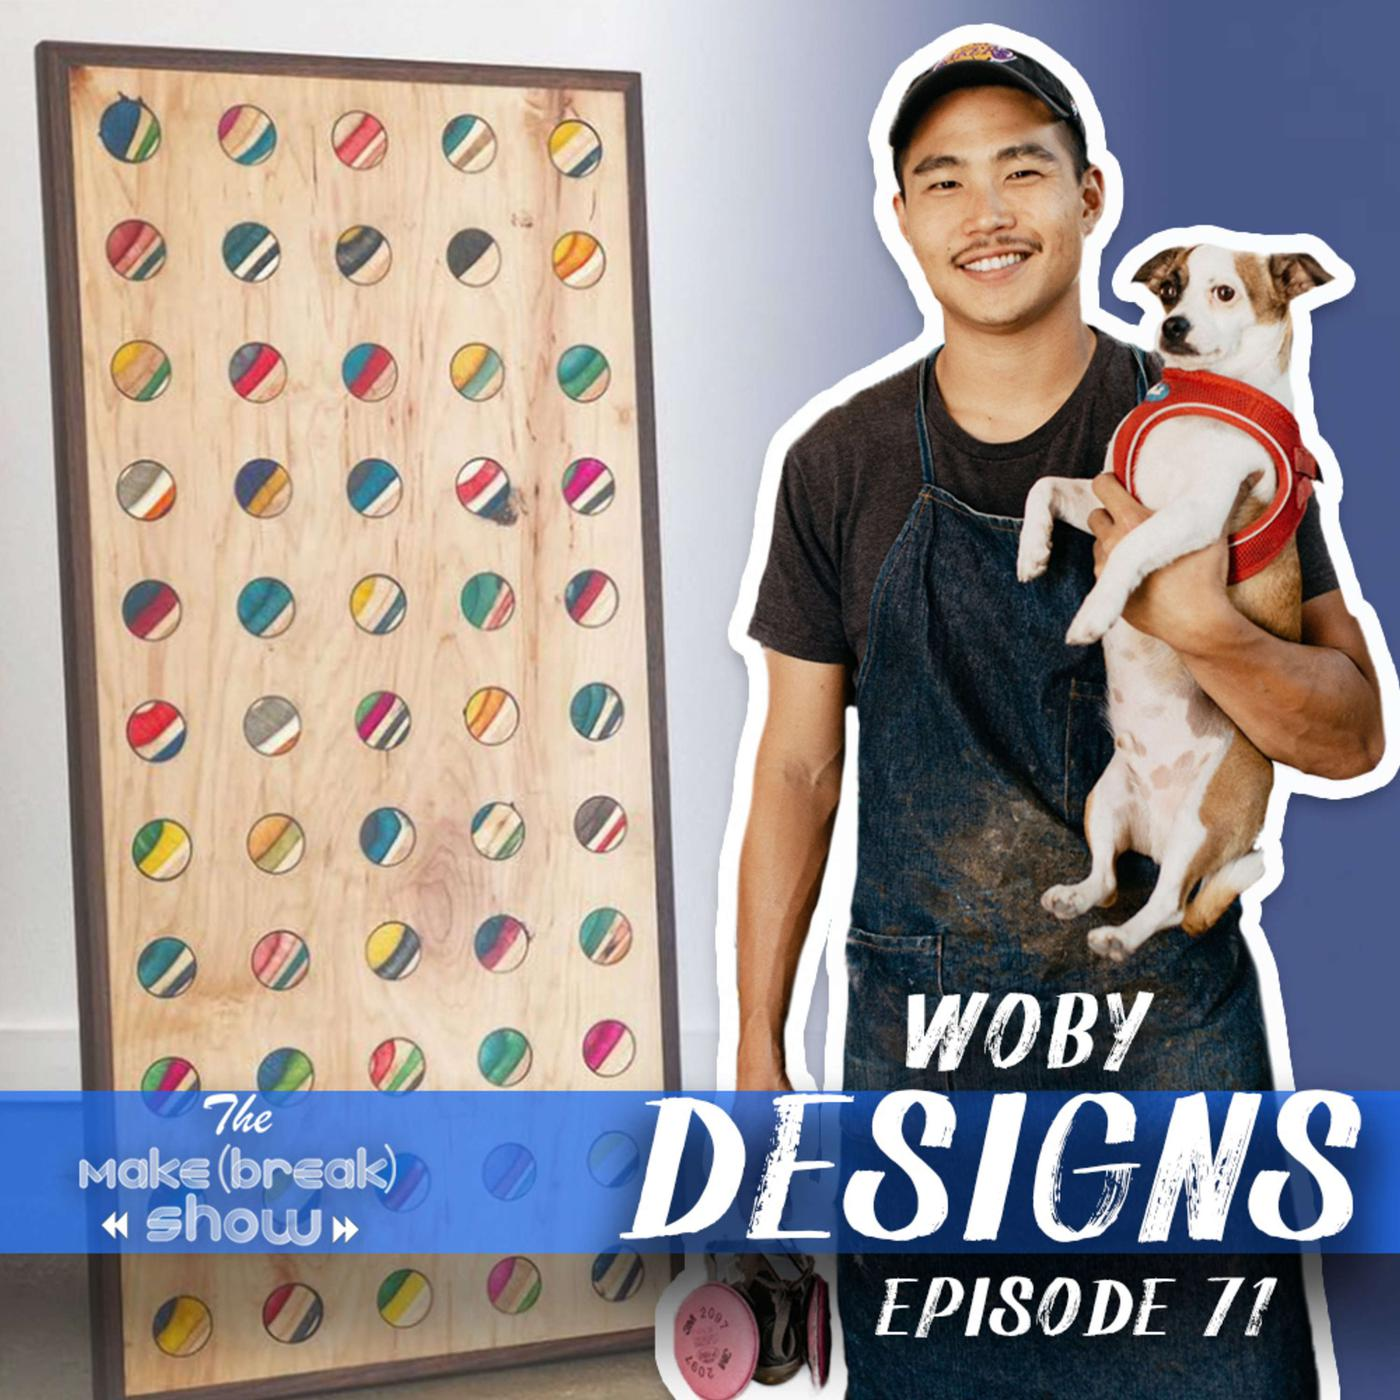 I'm your host Brandon Cullum and this week we chat with Ben Paik from Woby Designs. Learn how Ben is making furniture and more out of recycled skateboards.